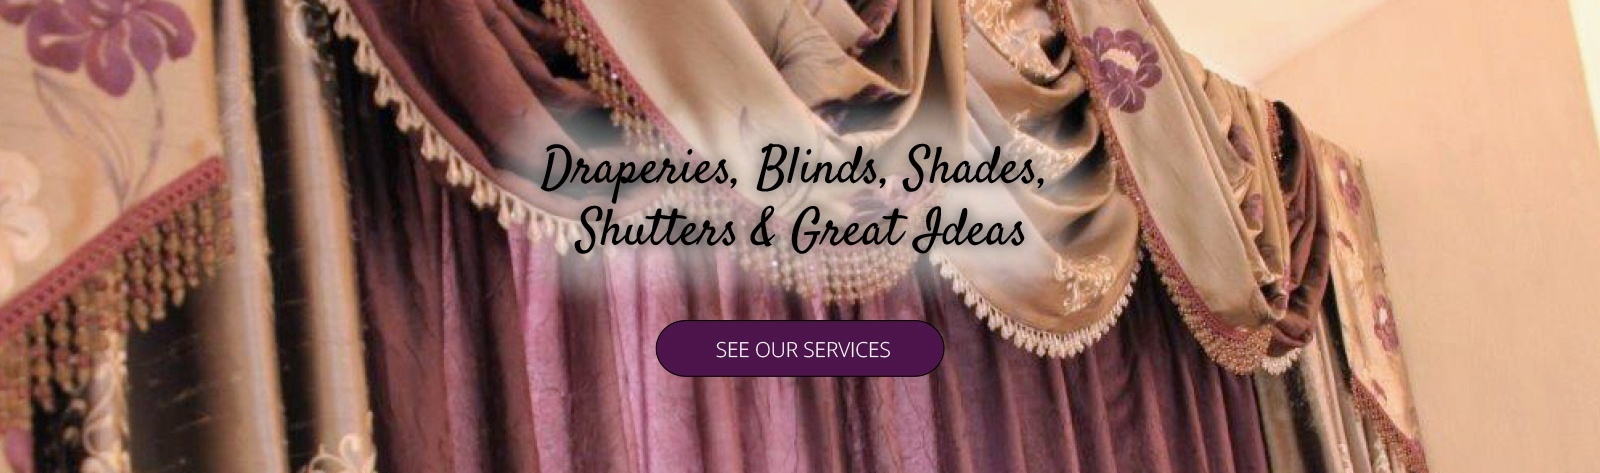 Draperies, Blinds, Shades, Shutters and Great Ideas